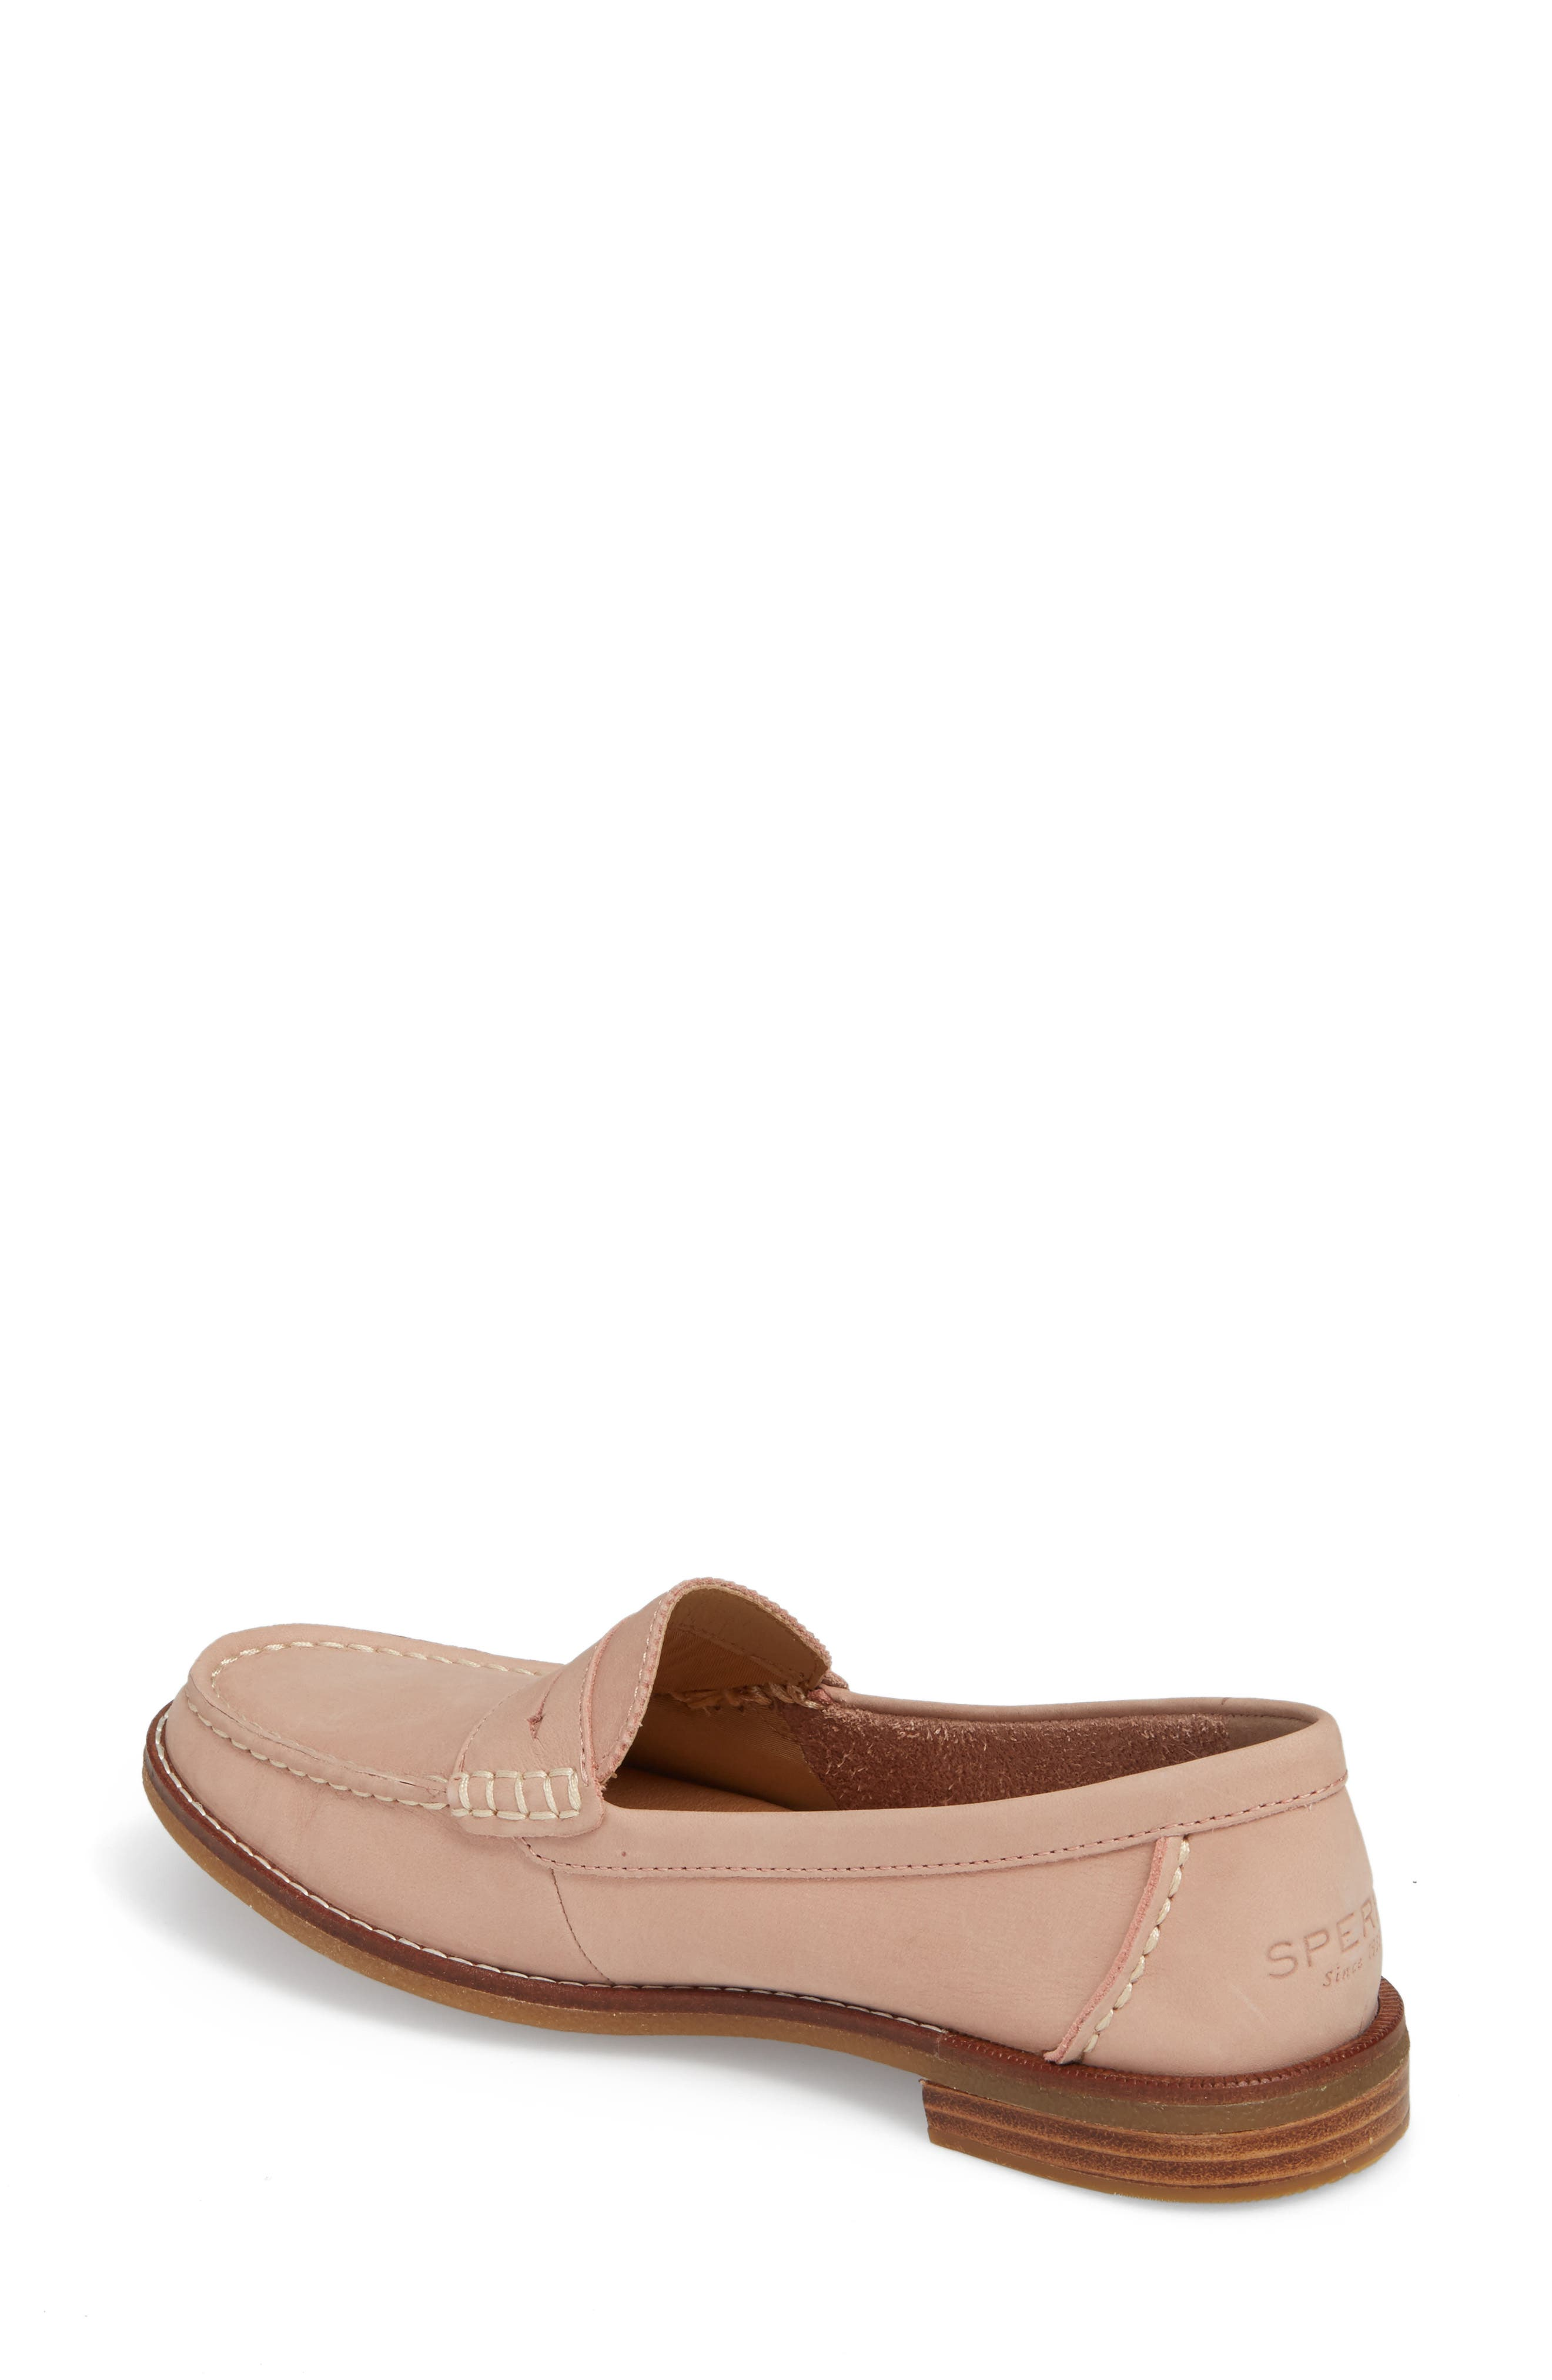 Seaport Penny Loafer,                             Alternate thumbnail 2, color,                             ROSE DUST LEATHER